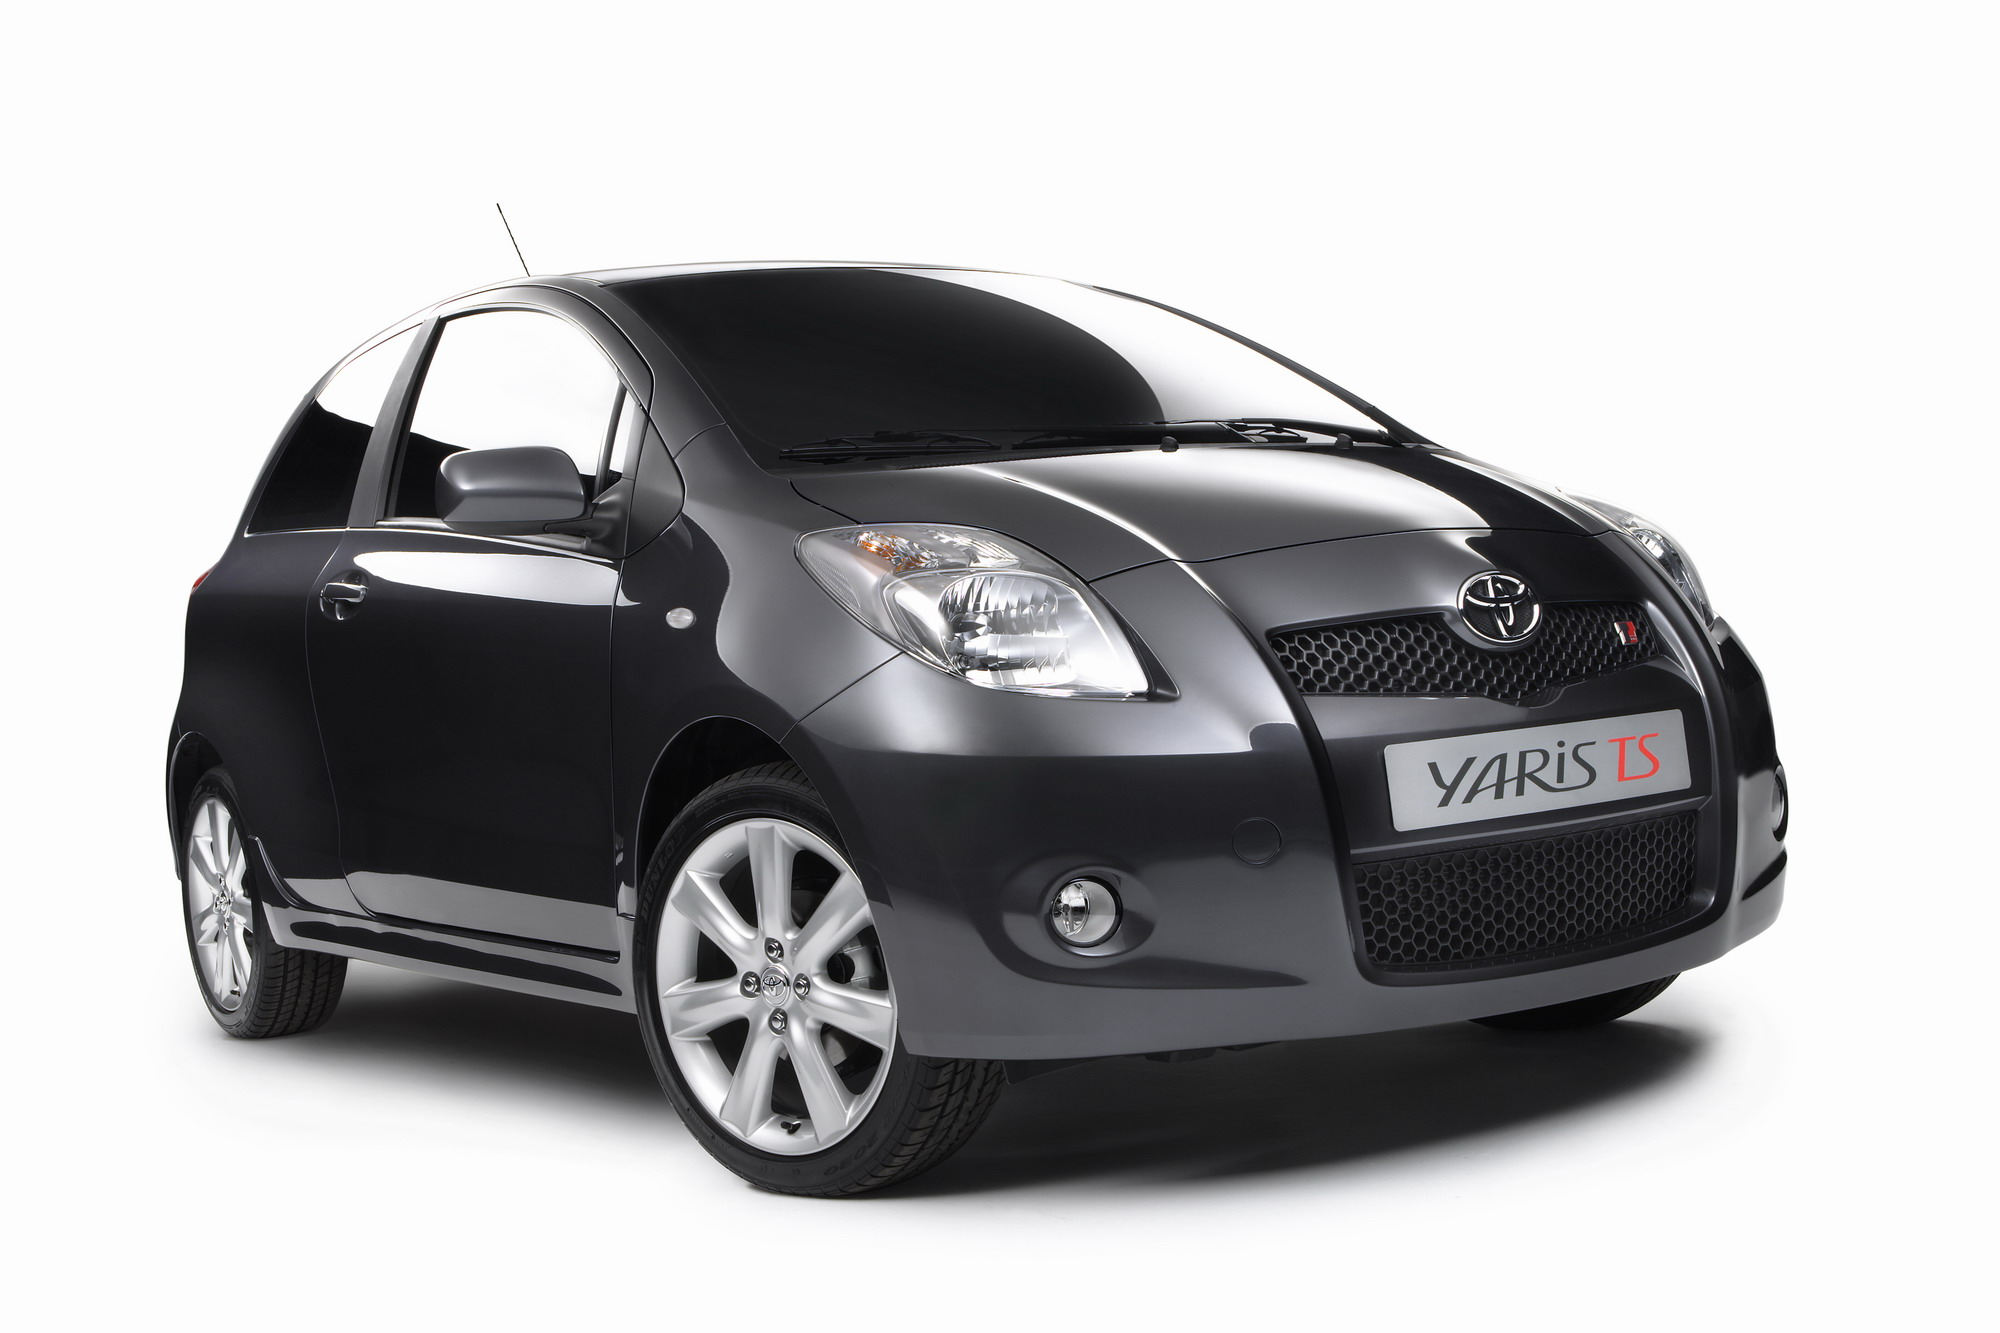 toyota yaris ts to be revealed at paris motor show news. Black Bedroom Furniture Sets. Home Design Ideas